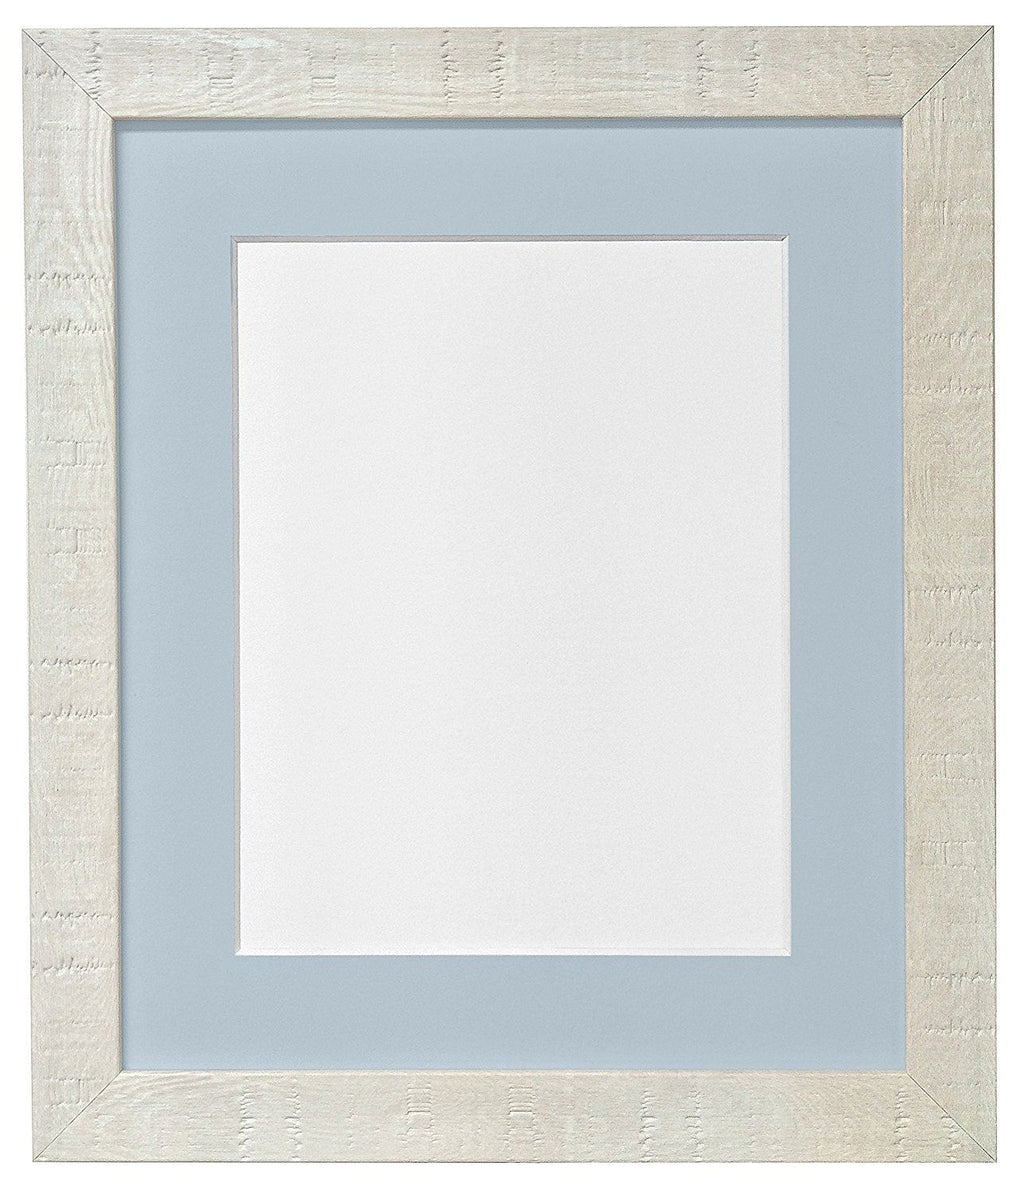 FRAMES BY POST 12 x 10-Inch Deep Grain Picture Photo Frame with Light Blue Grey Mount for 10 x 8-Inch Picture Size, Off-White